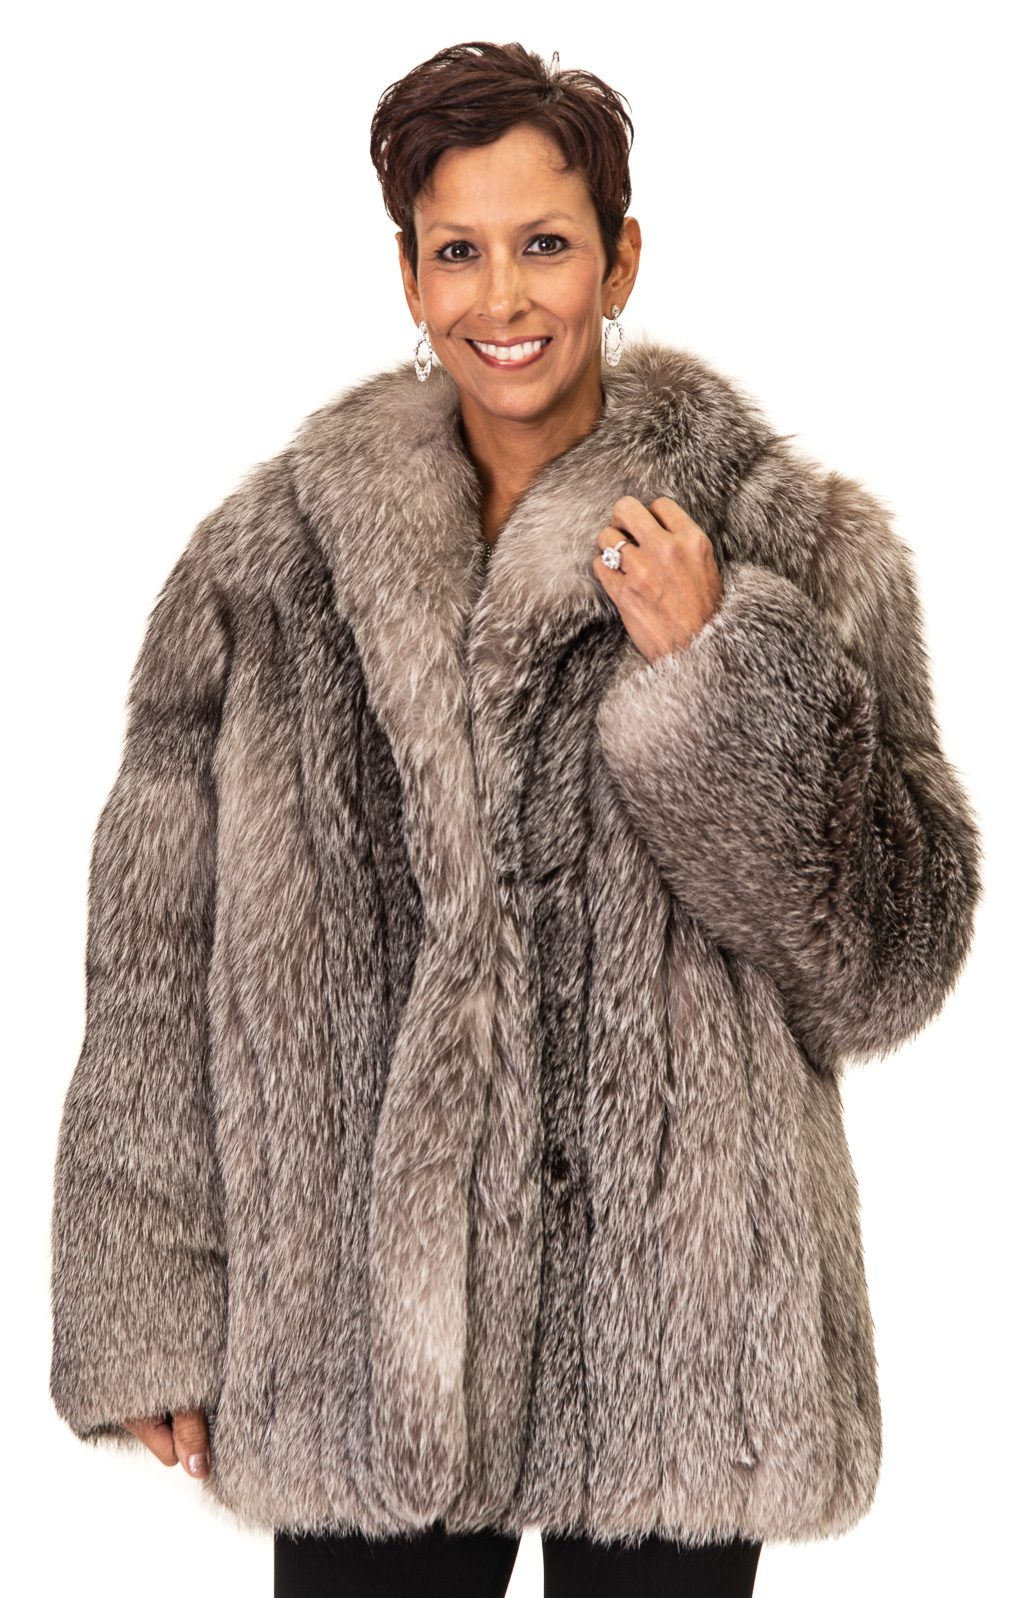 151 2 Silver Fox Ugent Furs